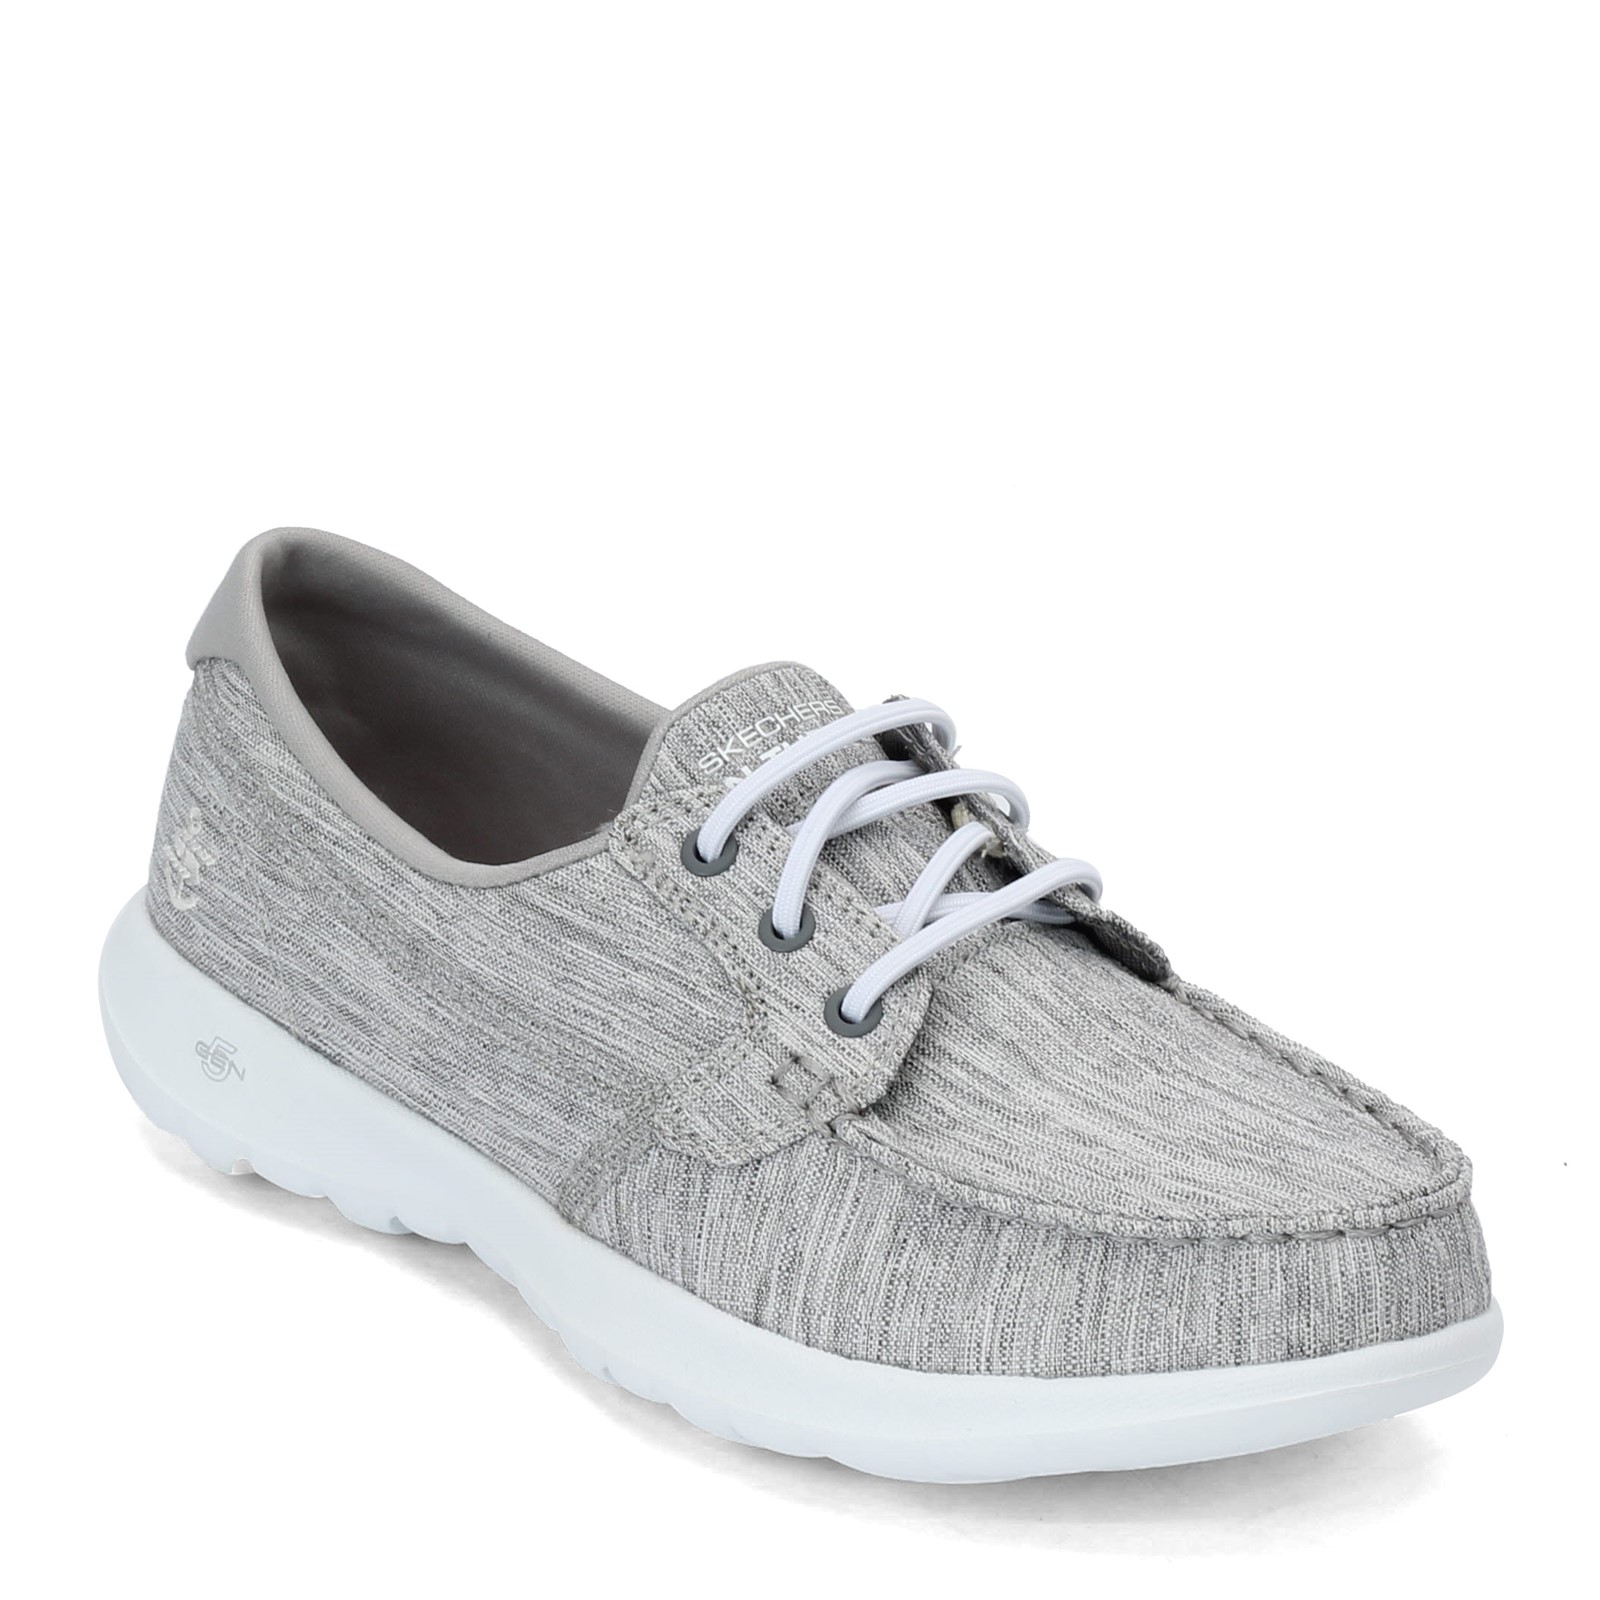 Women's Skechers Performance, GOwalk Lite - Isla Boat Shoe